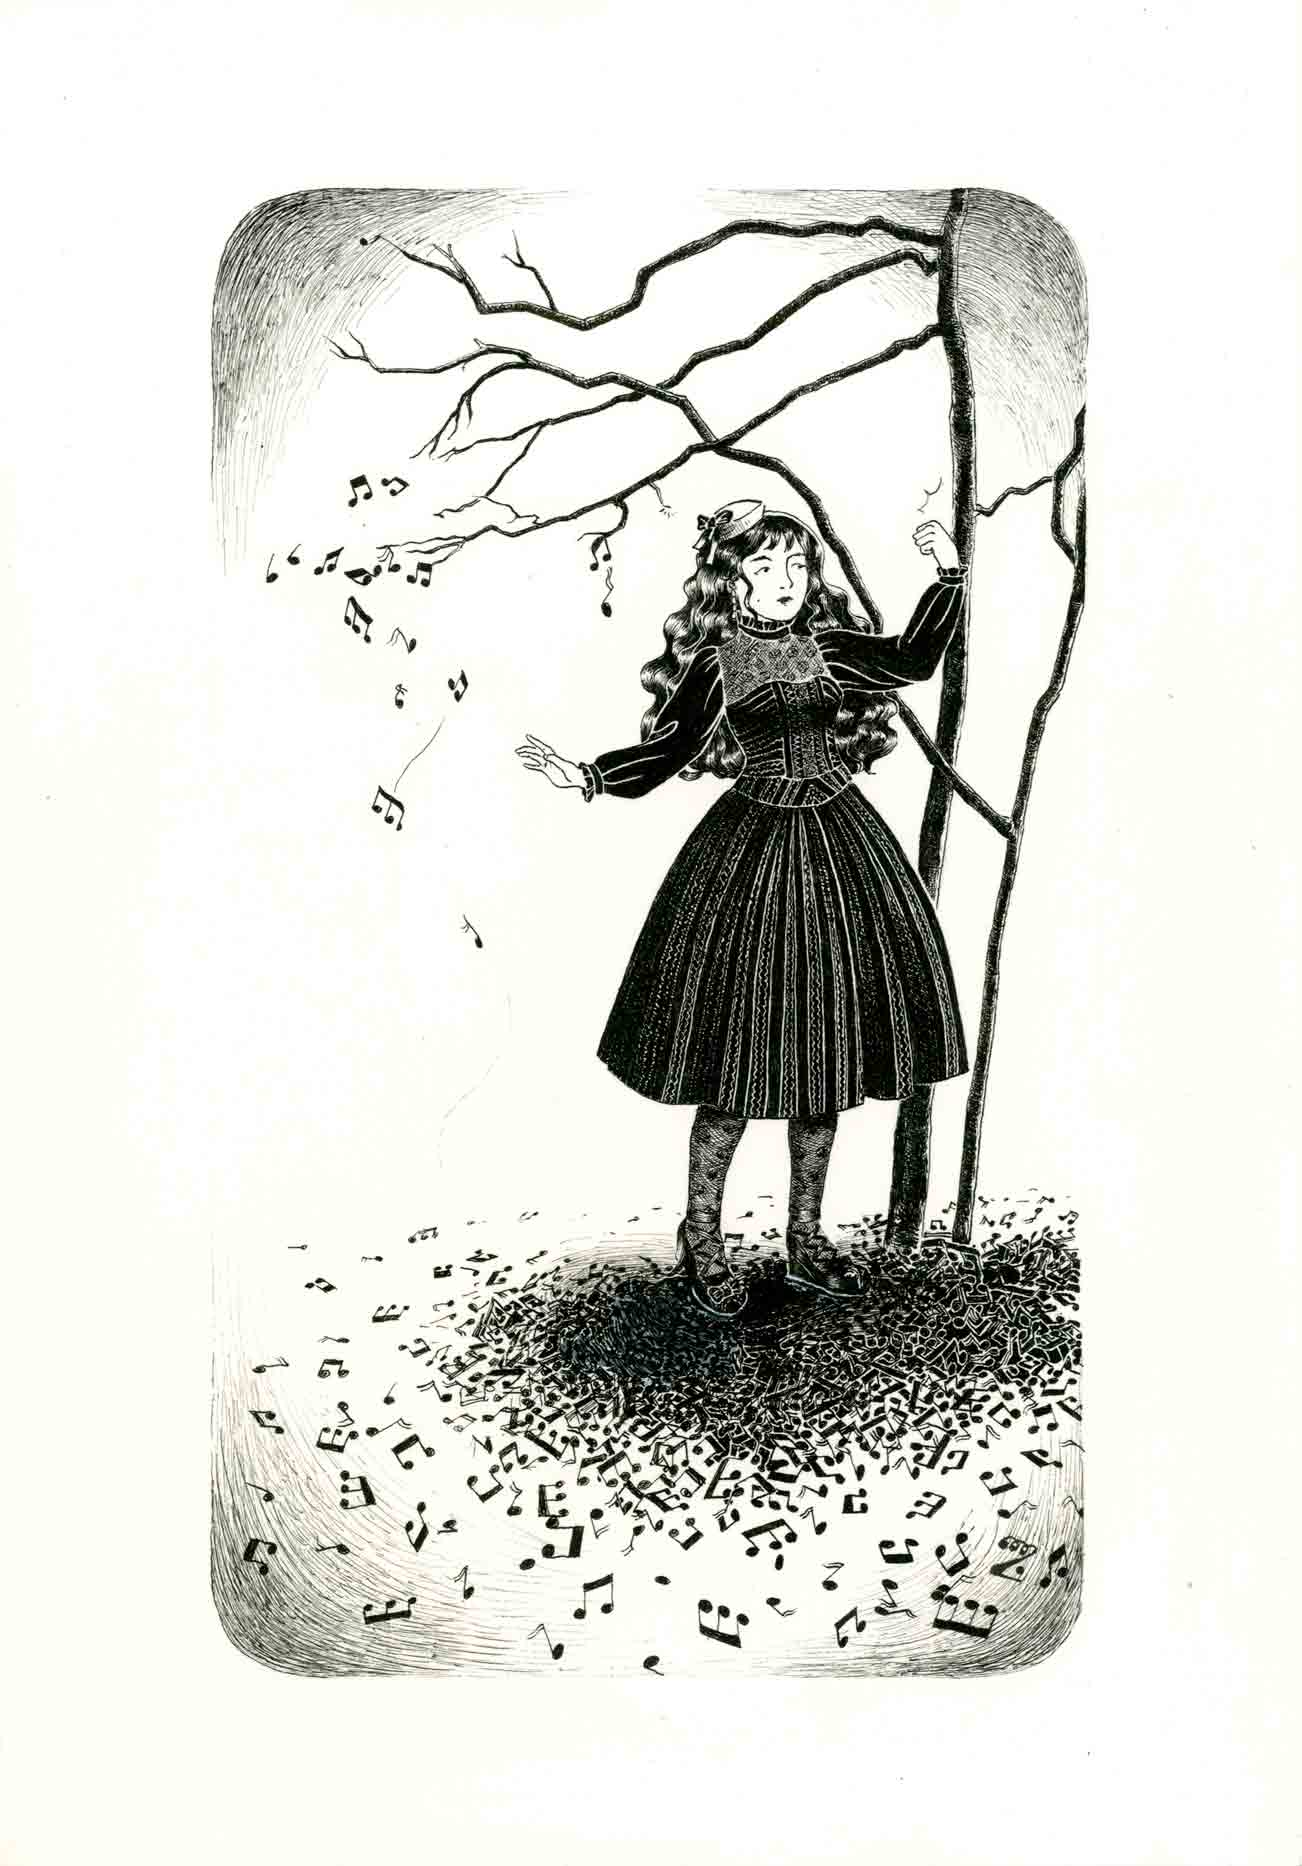 Black and white depiction of a classic lolita in a dress inspired by dolce piu amabile is gently knocking on a musical tree with the result of musical keys falling on the floor.